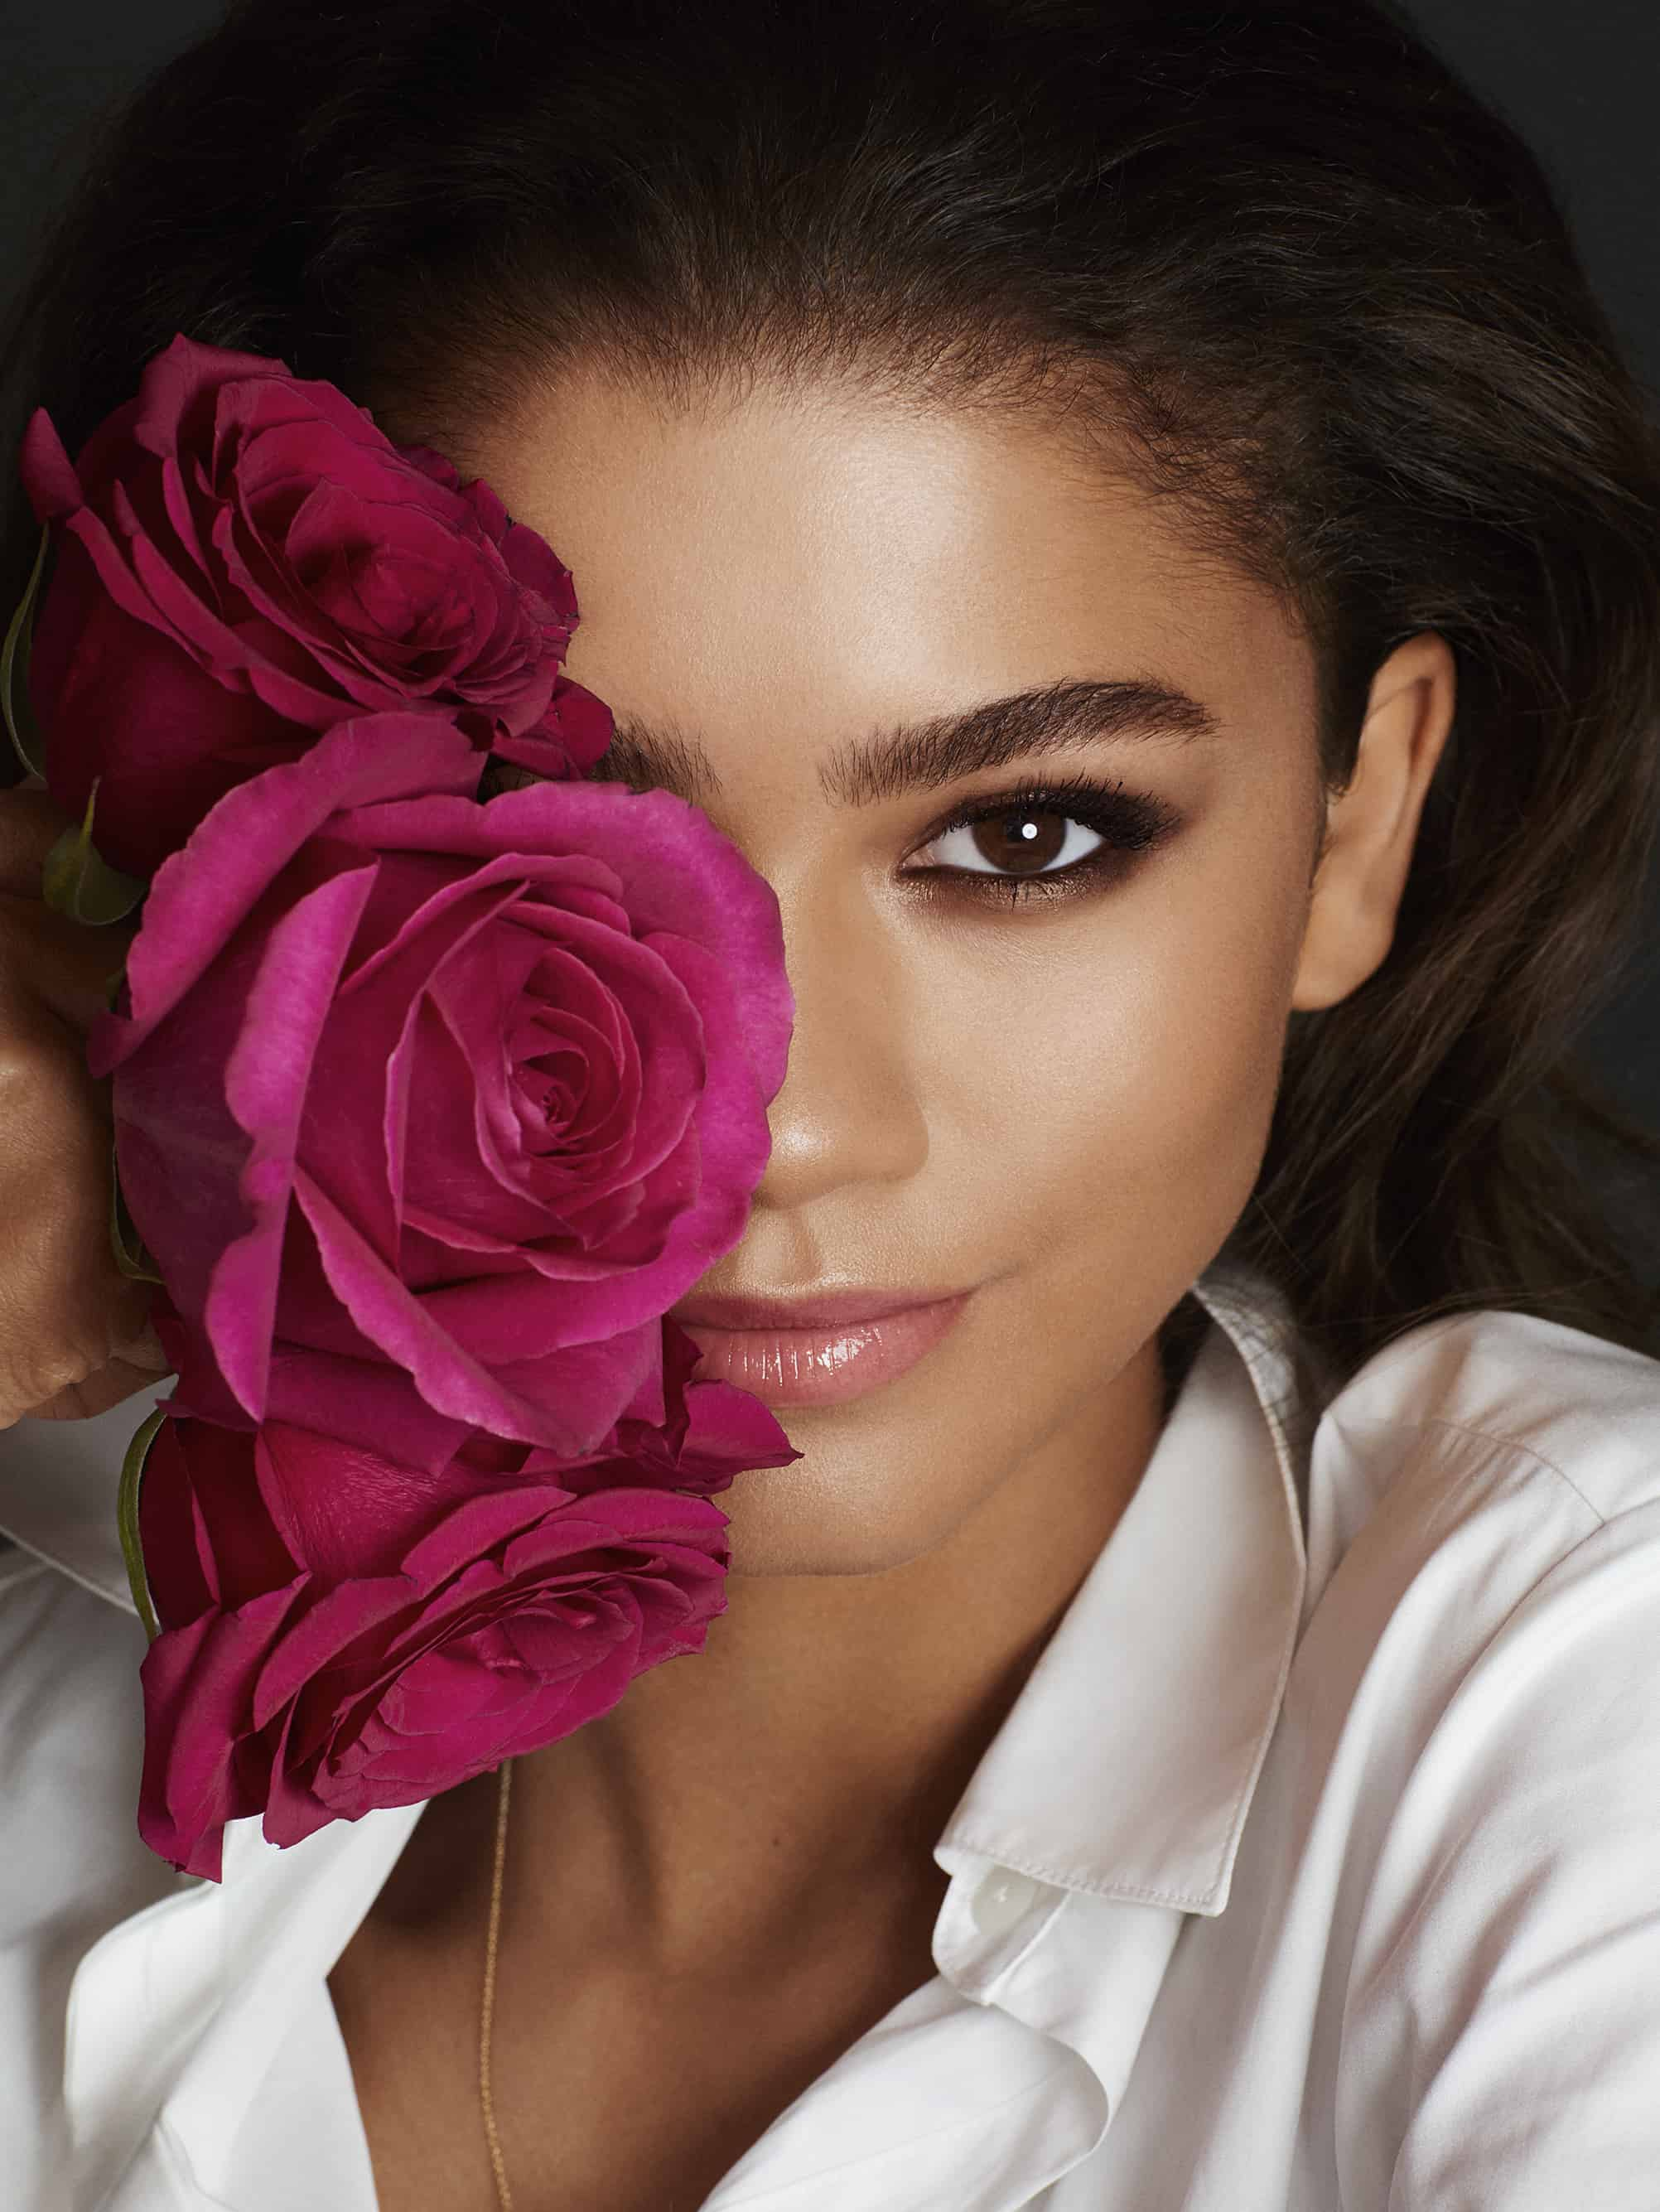 Headshot of Zendaya with pink roses covering half of her face